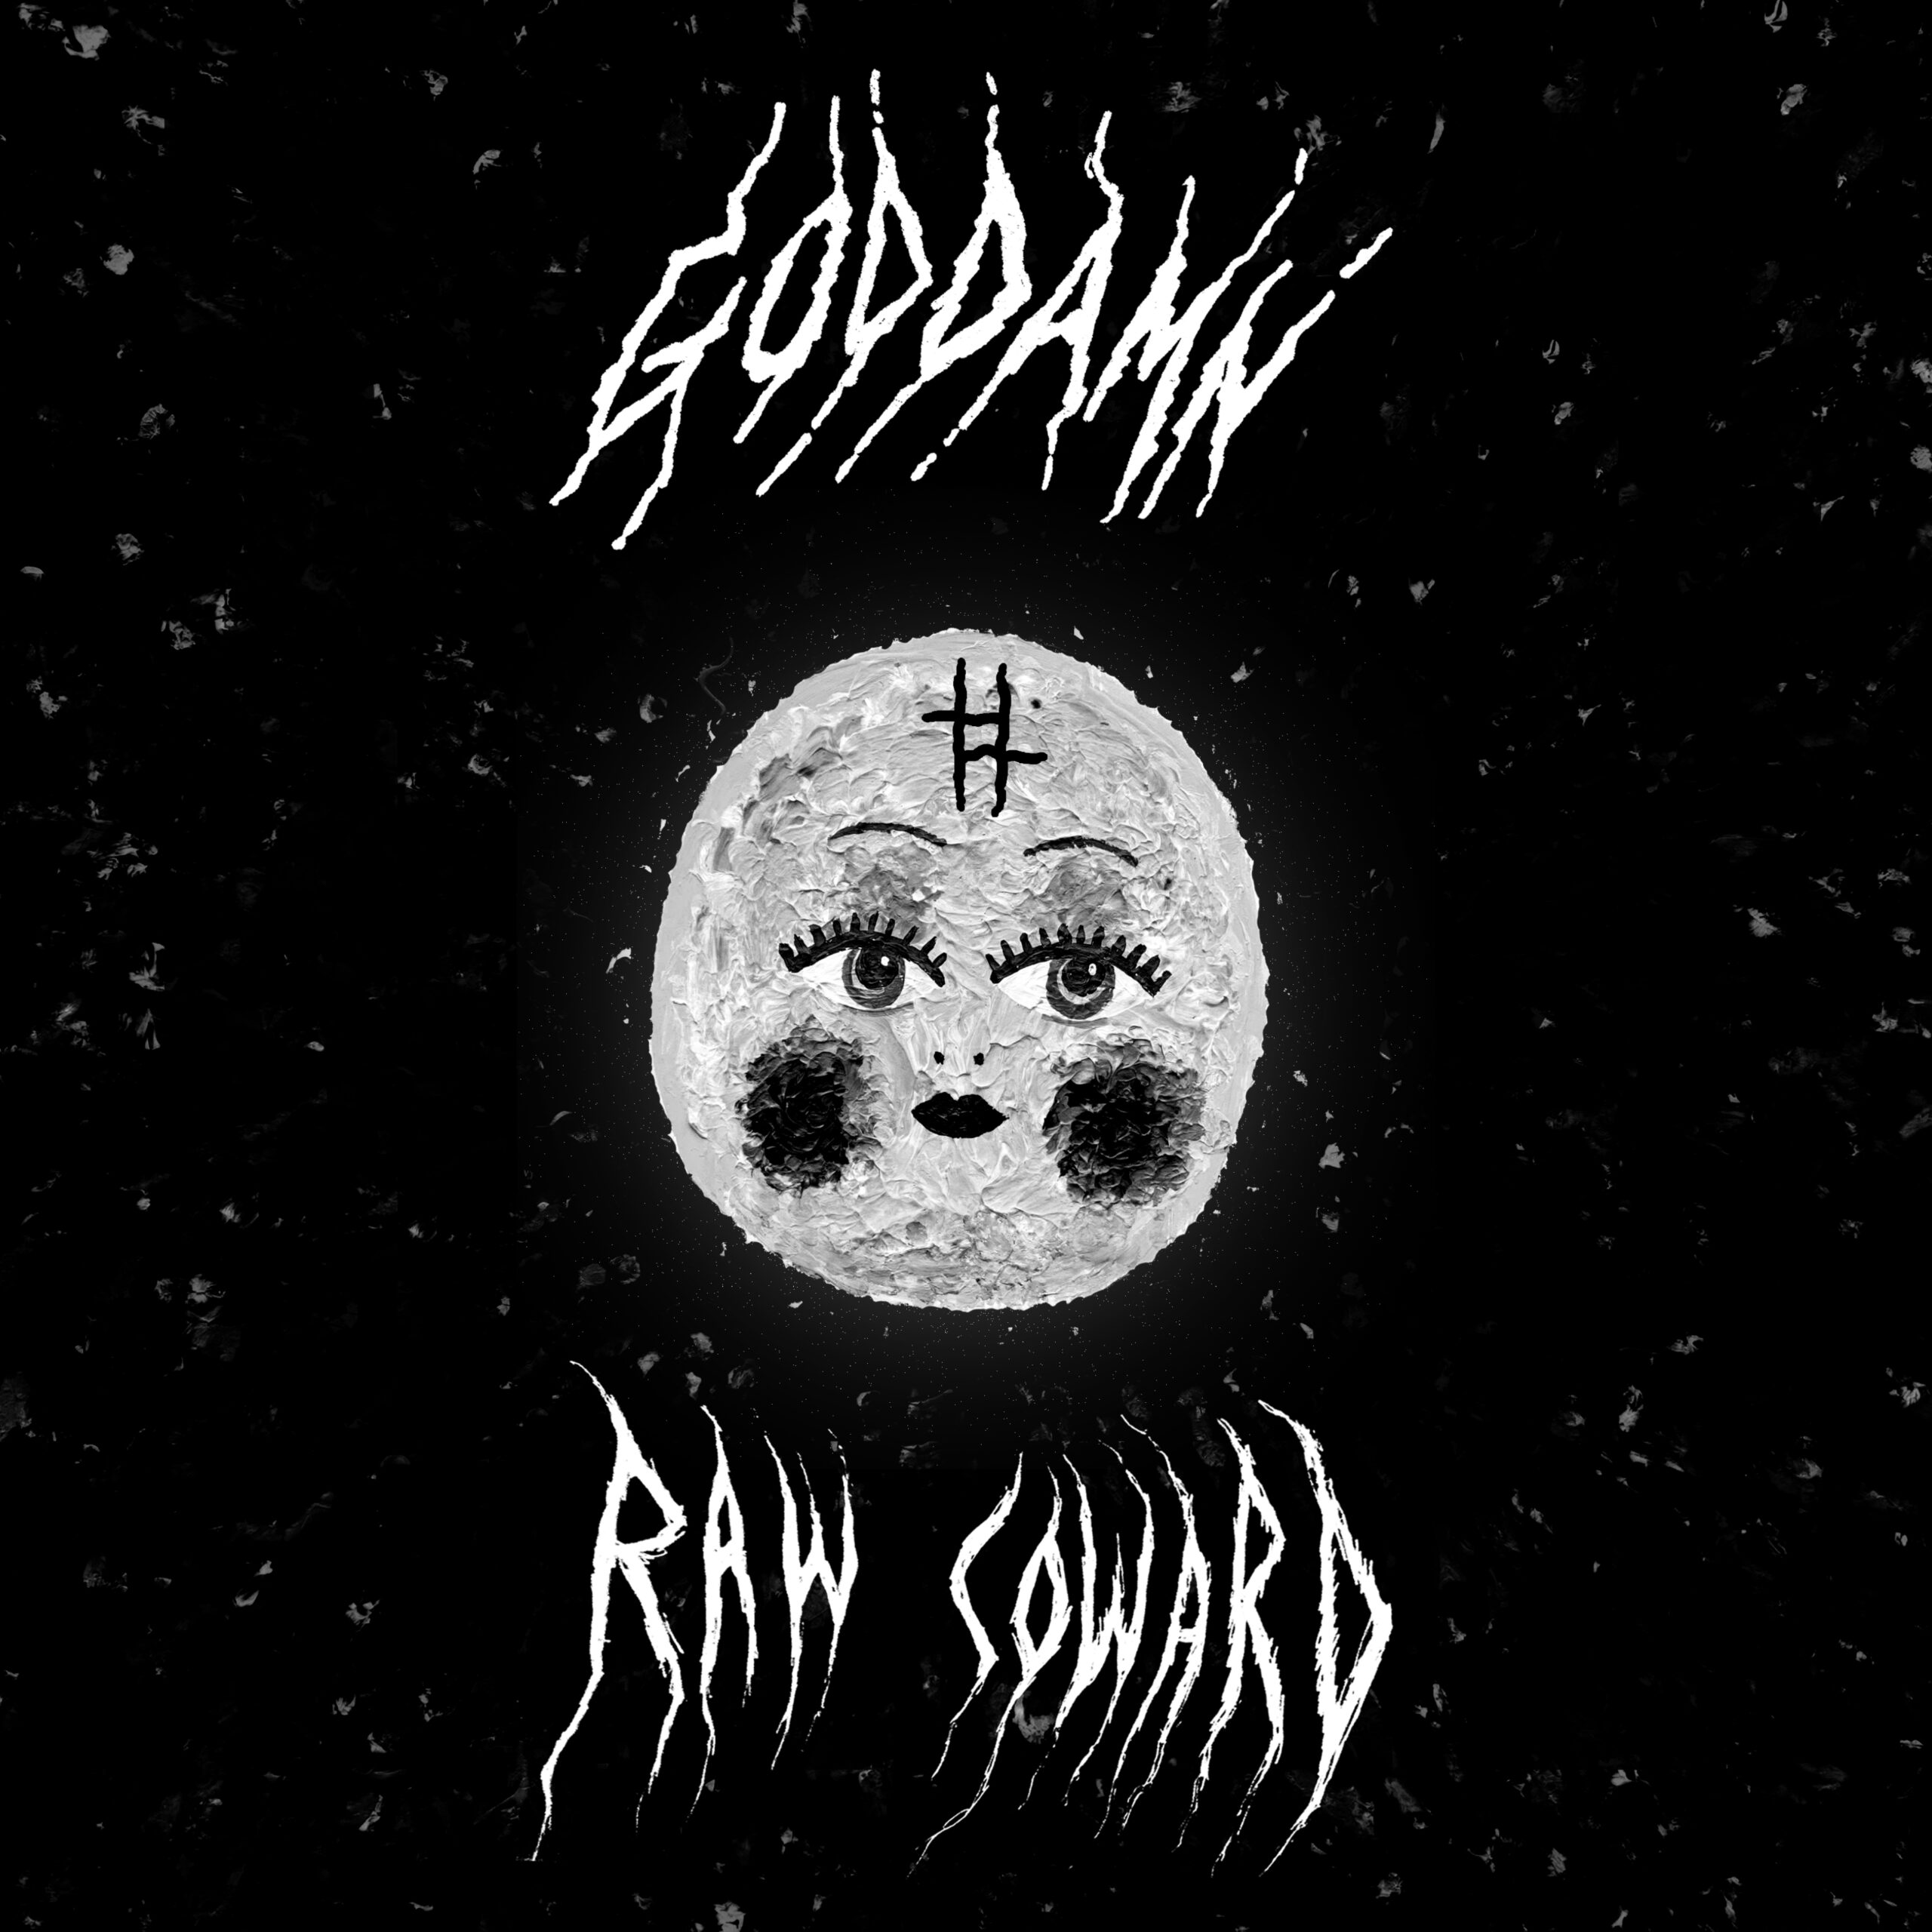 God Damn - Raw Coward - One Little Independent Records